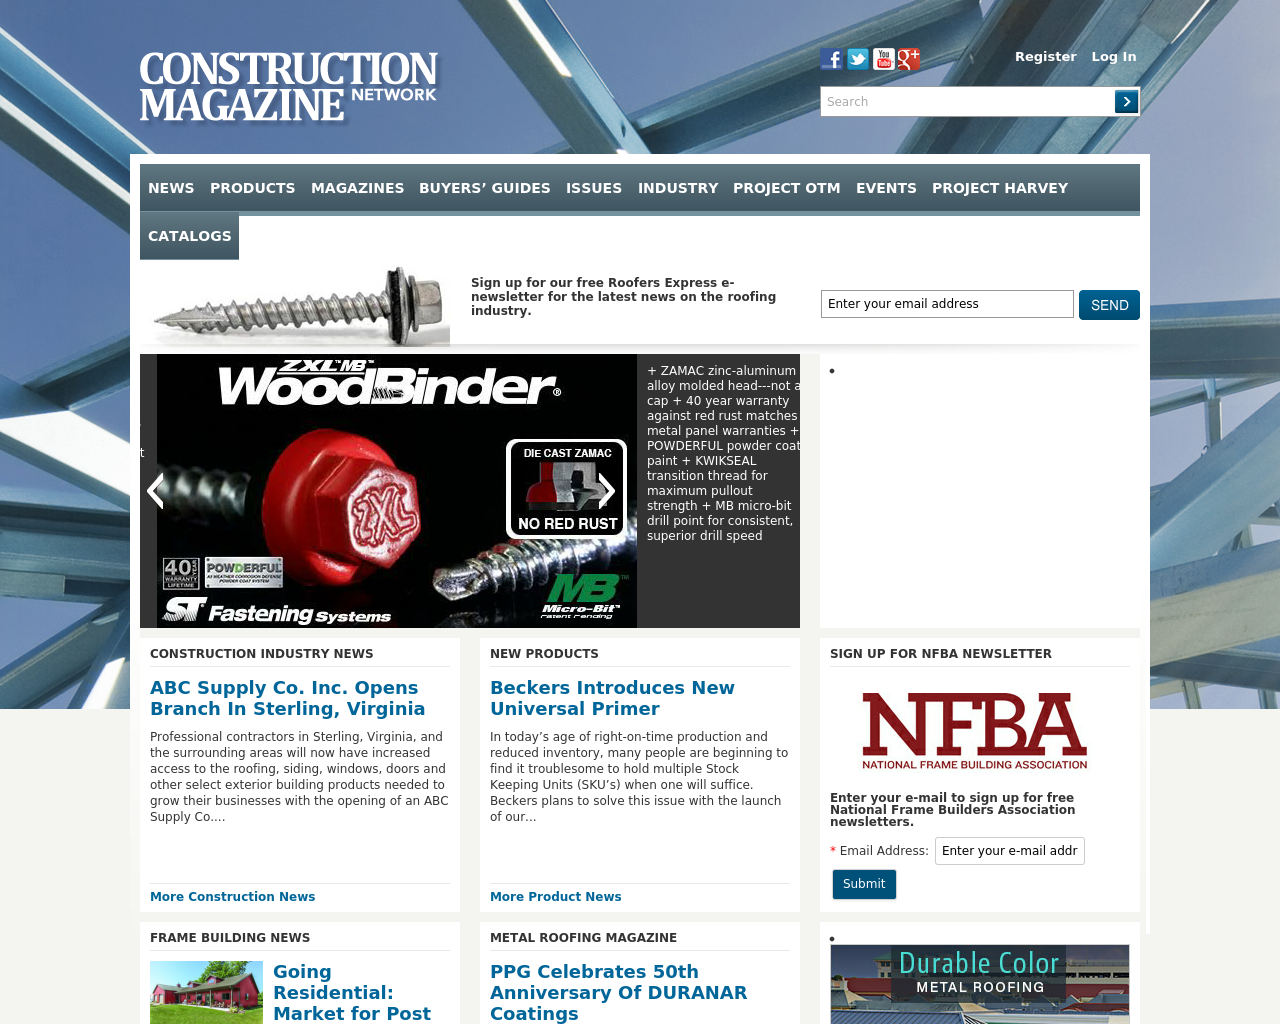 Construction-Magazine-Network-Advertising-Reviews-Pricing